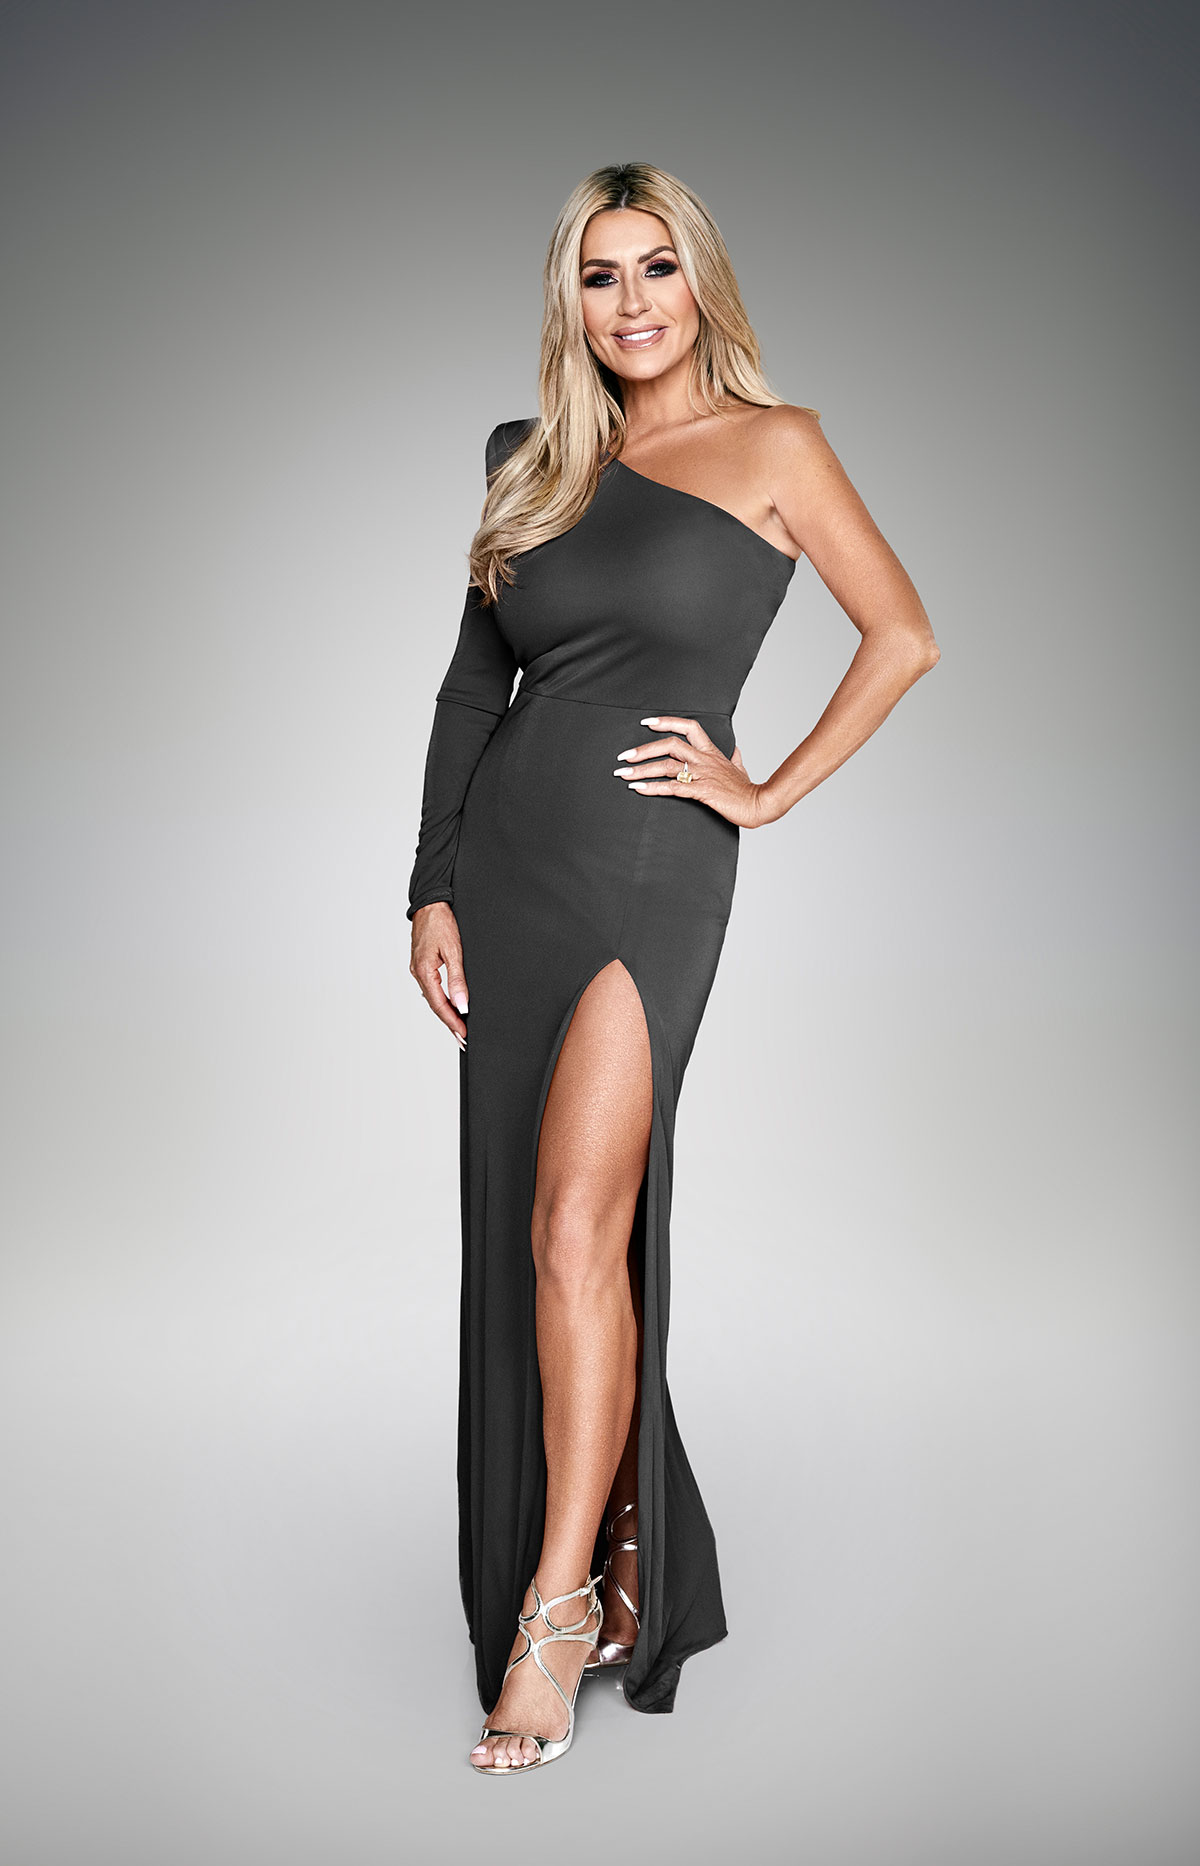 The Real Housewives of Cheshire's Dawn Ward: My Luxe List